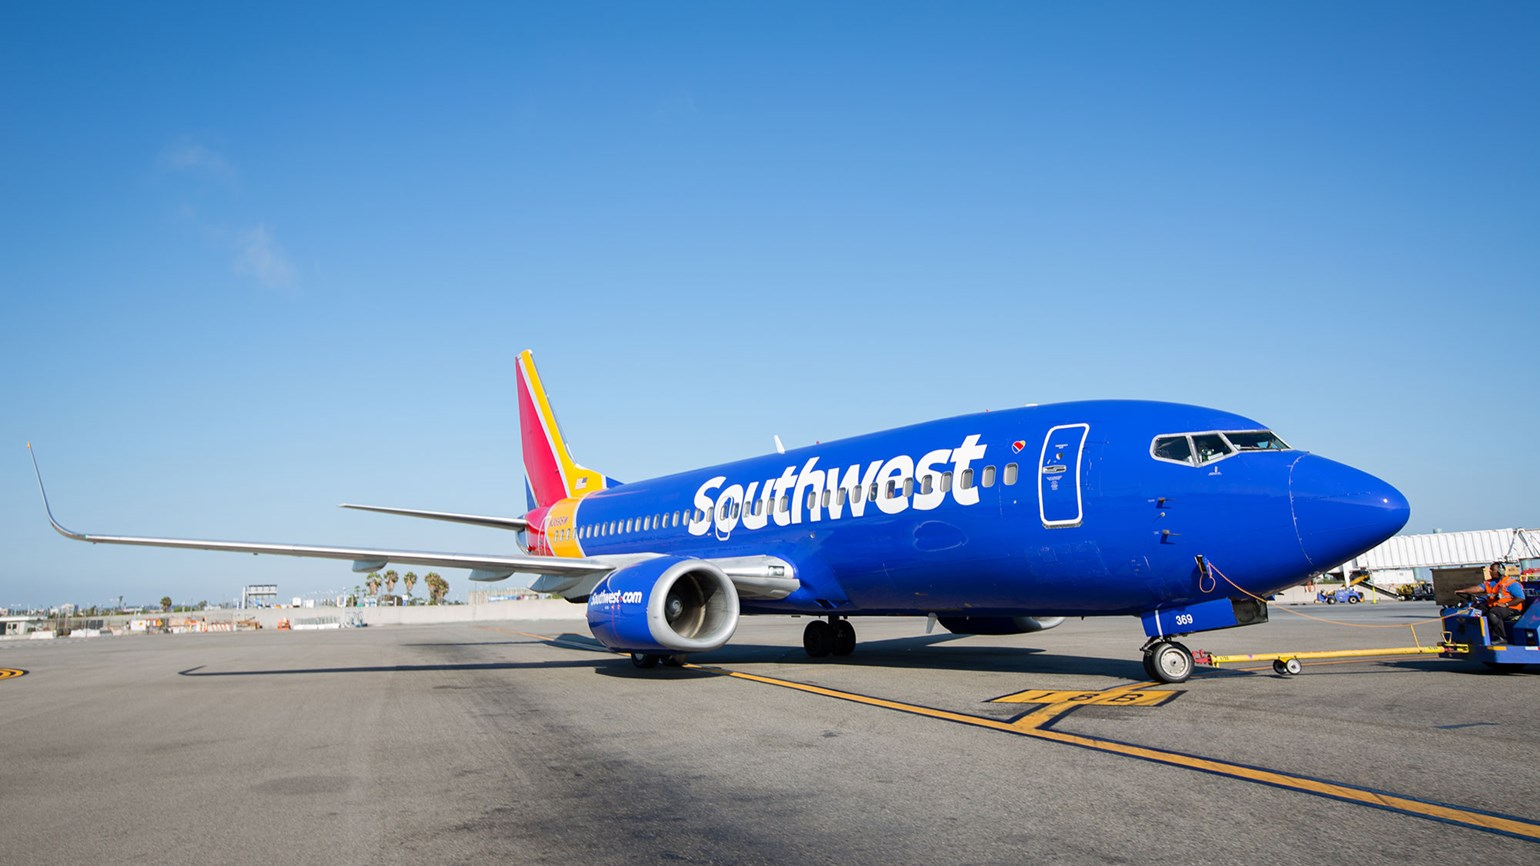 Southwest testing short-haul strategy in California